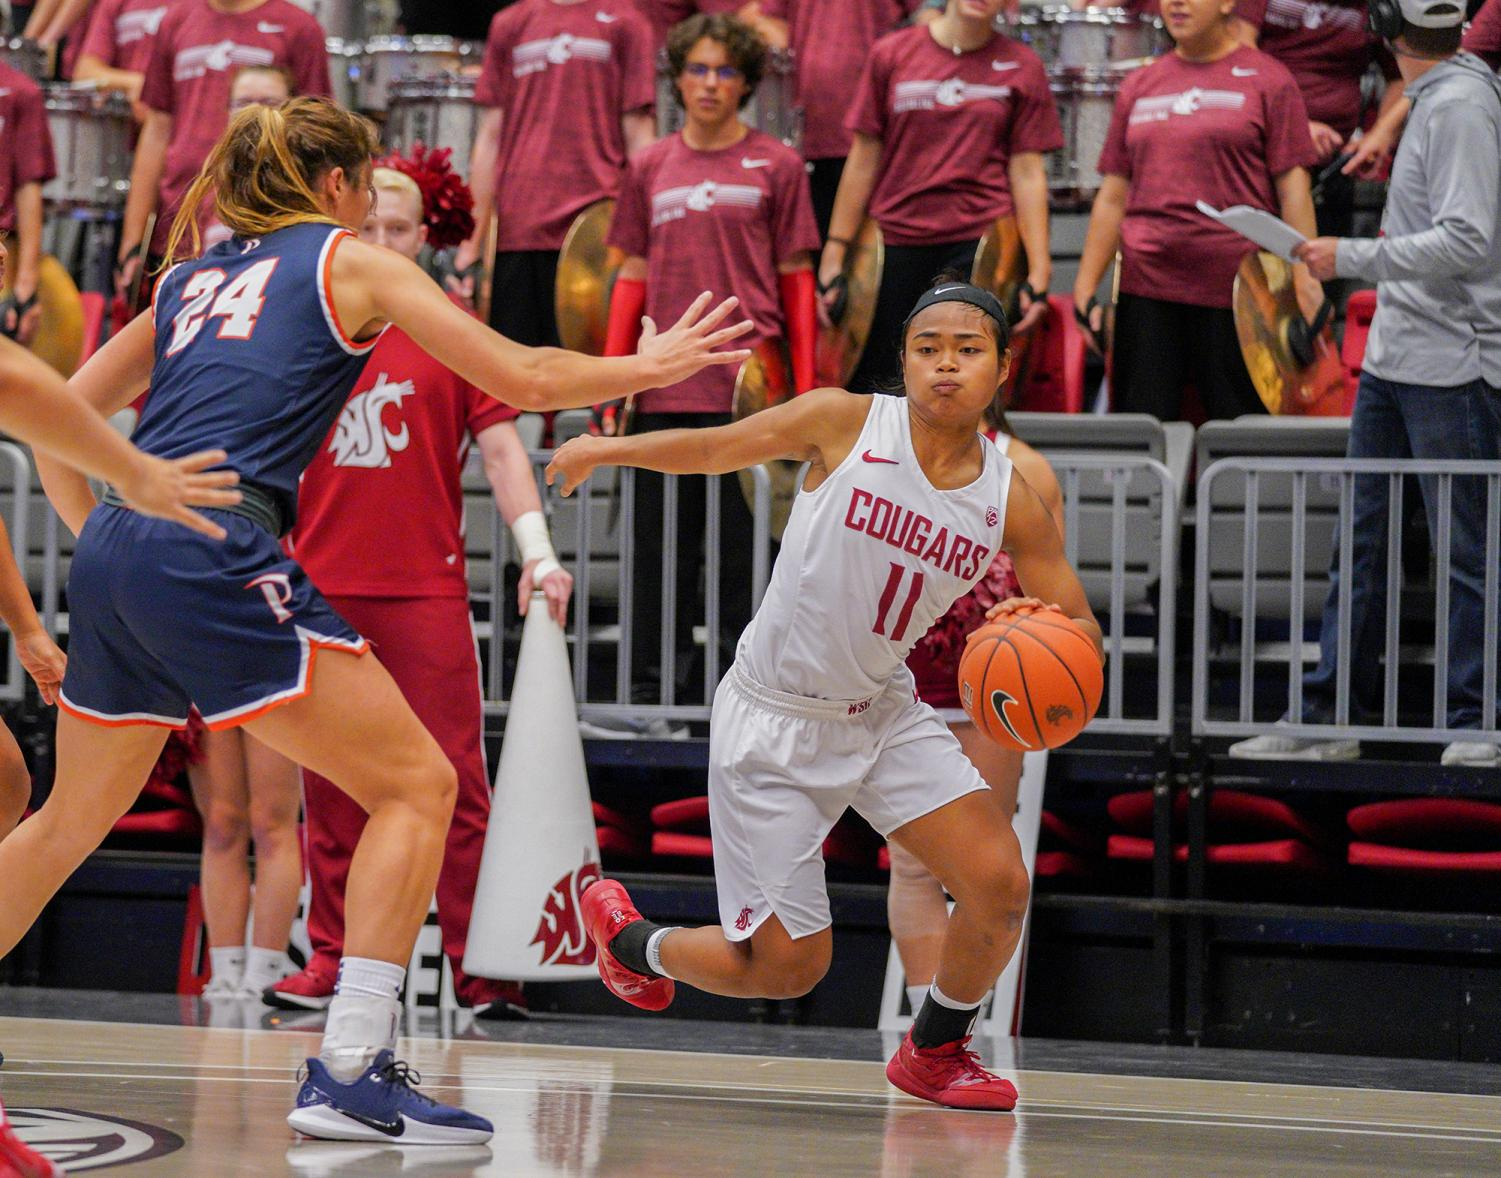 Senior guard Chanelle Molina dribbles against Pepperdine defense on Tuesday night at Beasley Coliseum.